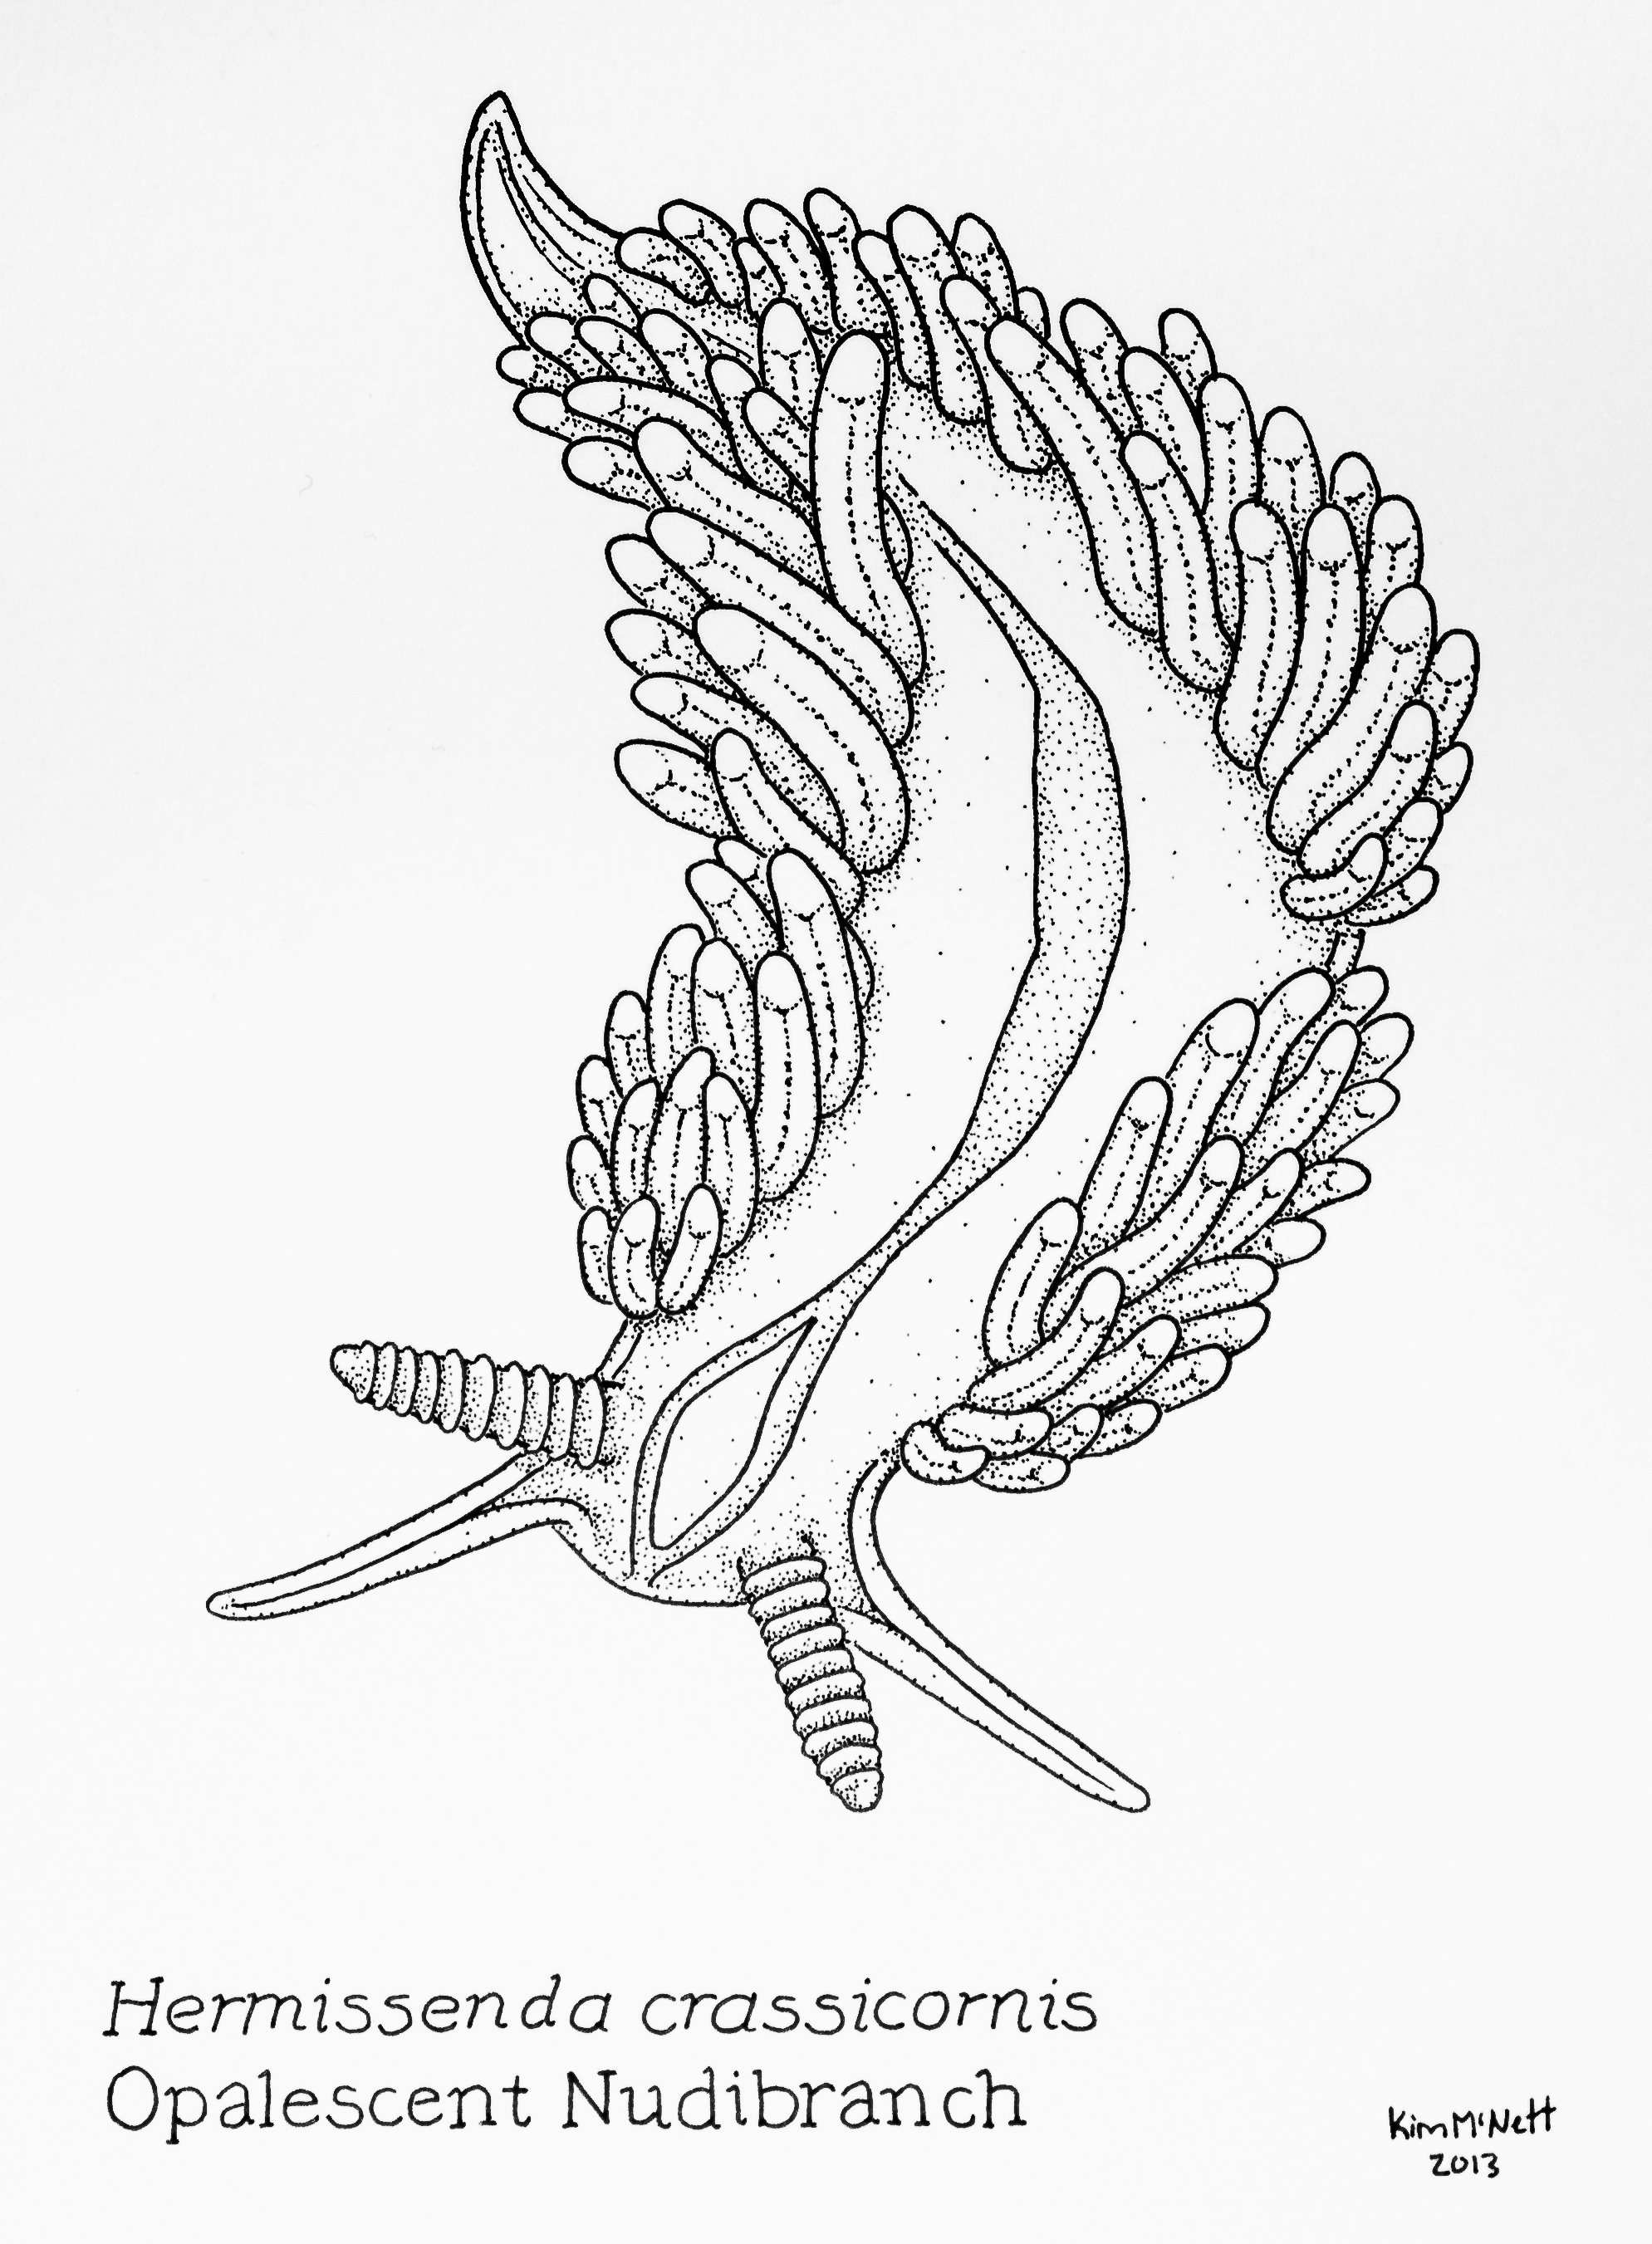 Opalescent Nudibranch, Hermissenda crassicornis drawing, nudibranch, seaslug, sea slug, mollusk, gastropoda, gastropod, hermissenda, illustration, drawing